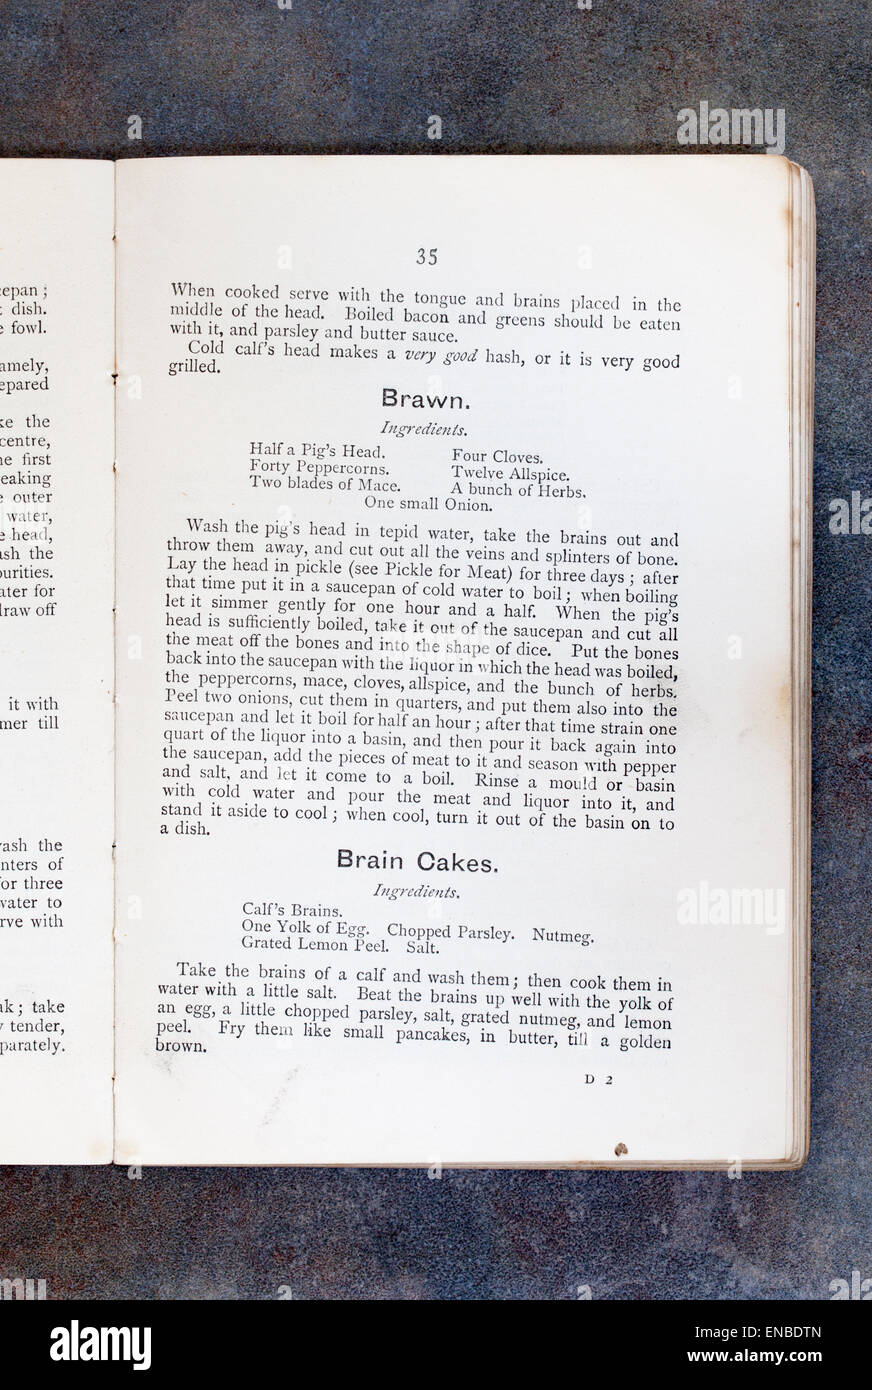 Brawn and Brain Cakes recipes from Plain Cookery Recipes Book by Mrs Charles Clarke for the National Training School - Stock Image